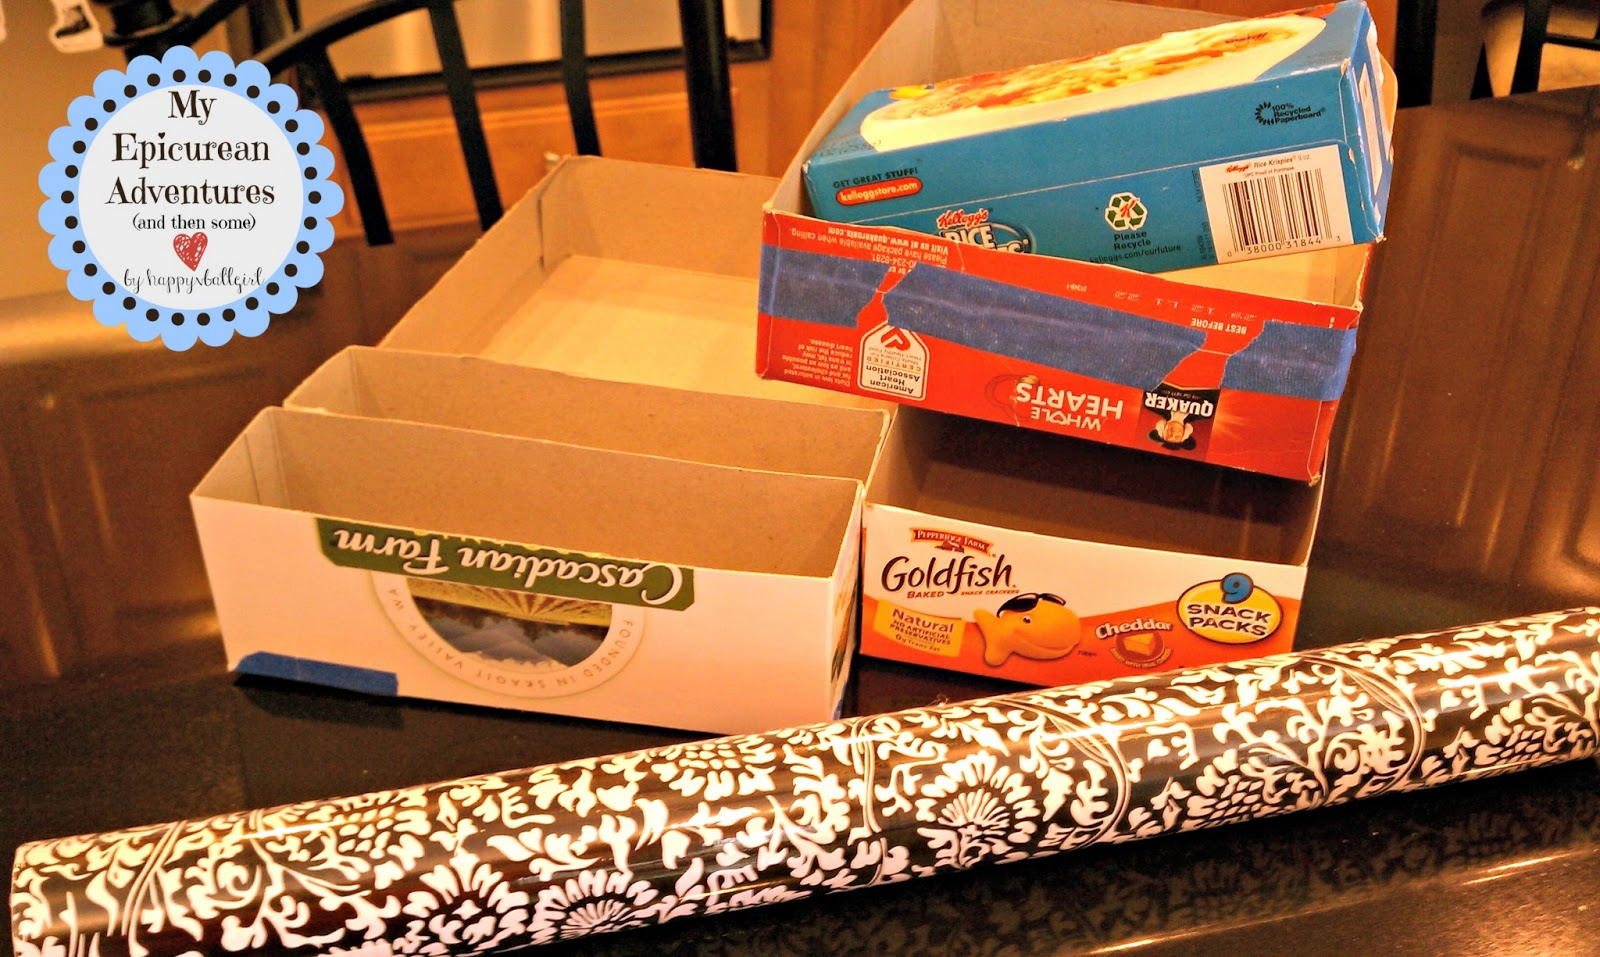 DIY Drawer/Shelf Organizers made cheap and easy using contact paper and cereal boxes!  sc 1 st  My Epicurean Adventures & My Epicurean Adventures: Do-It-Yourself Drawer Organizers Using ... Aboutintivar.Com